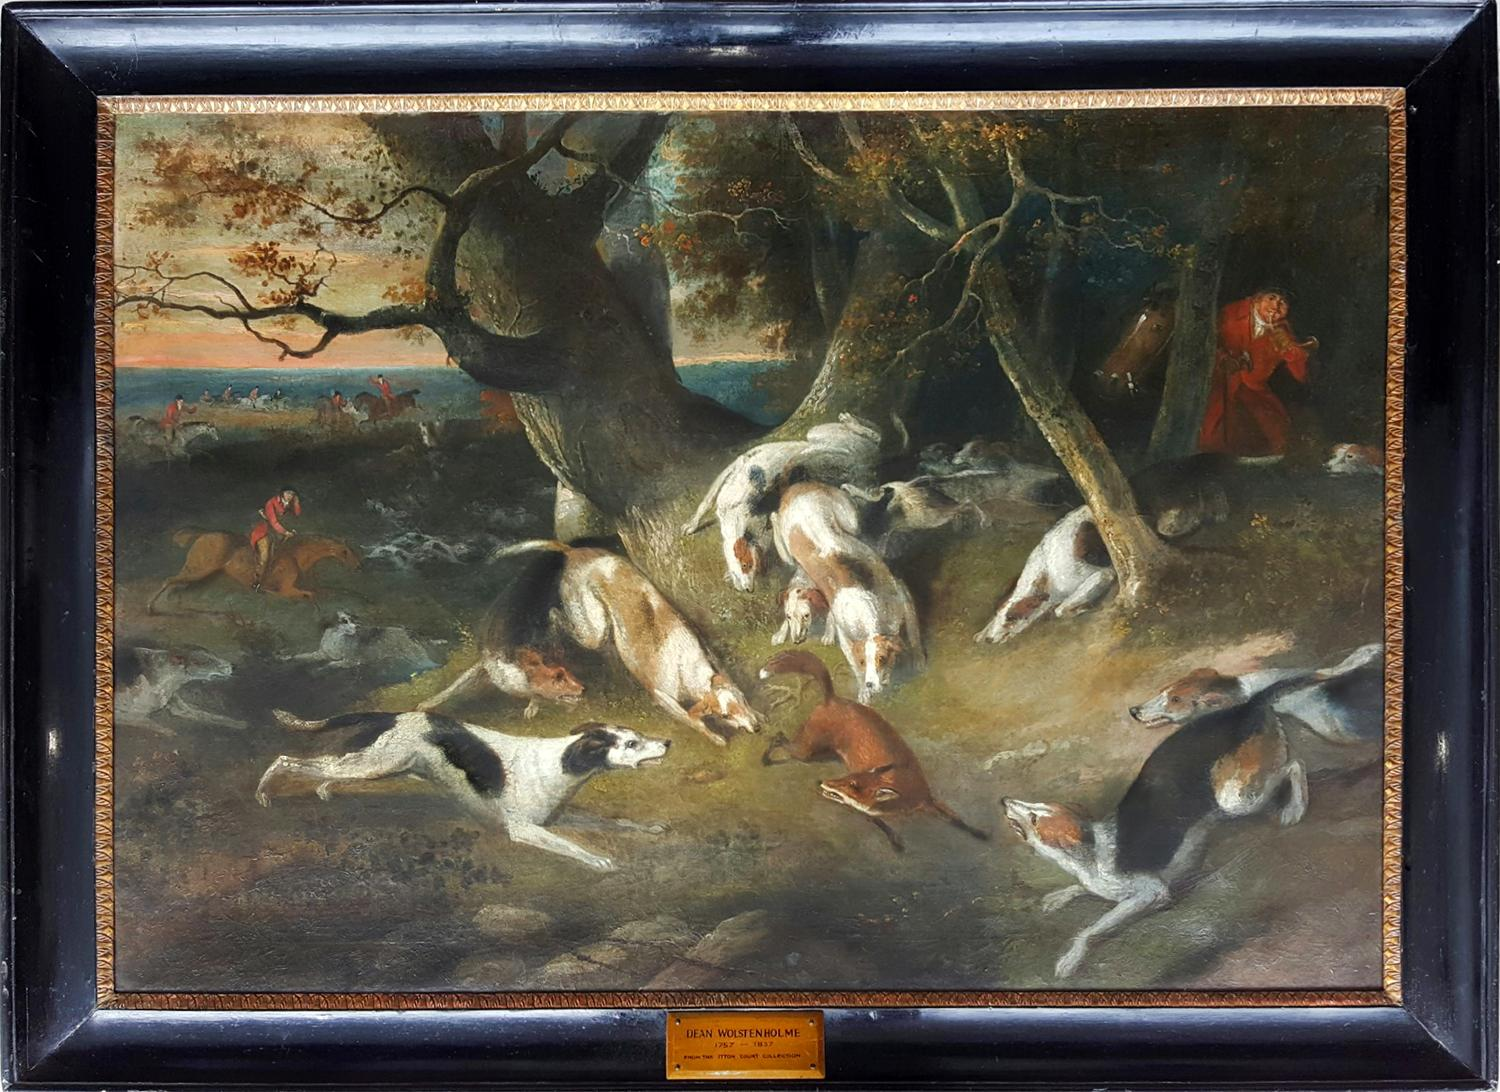 Hunting Scene with dogs attacking a fox